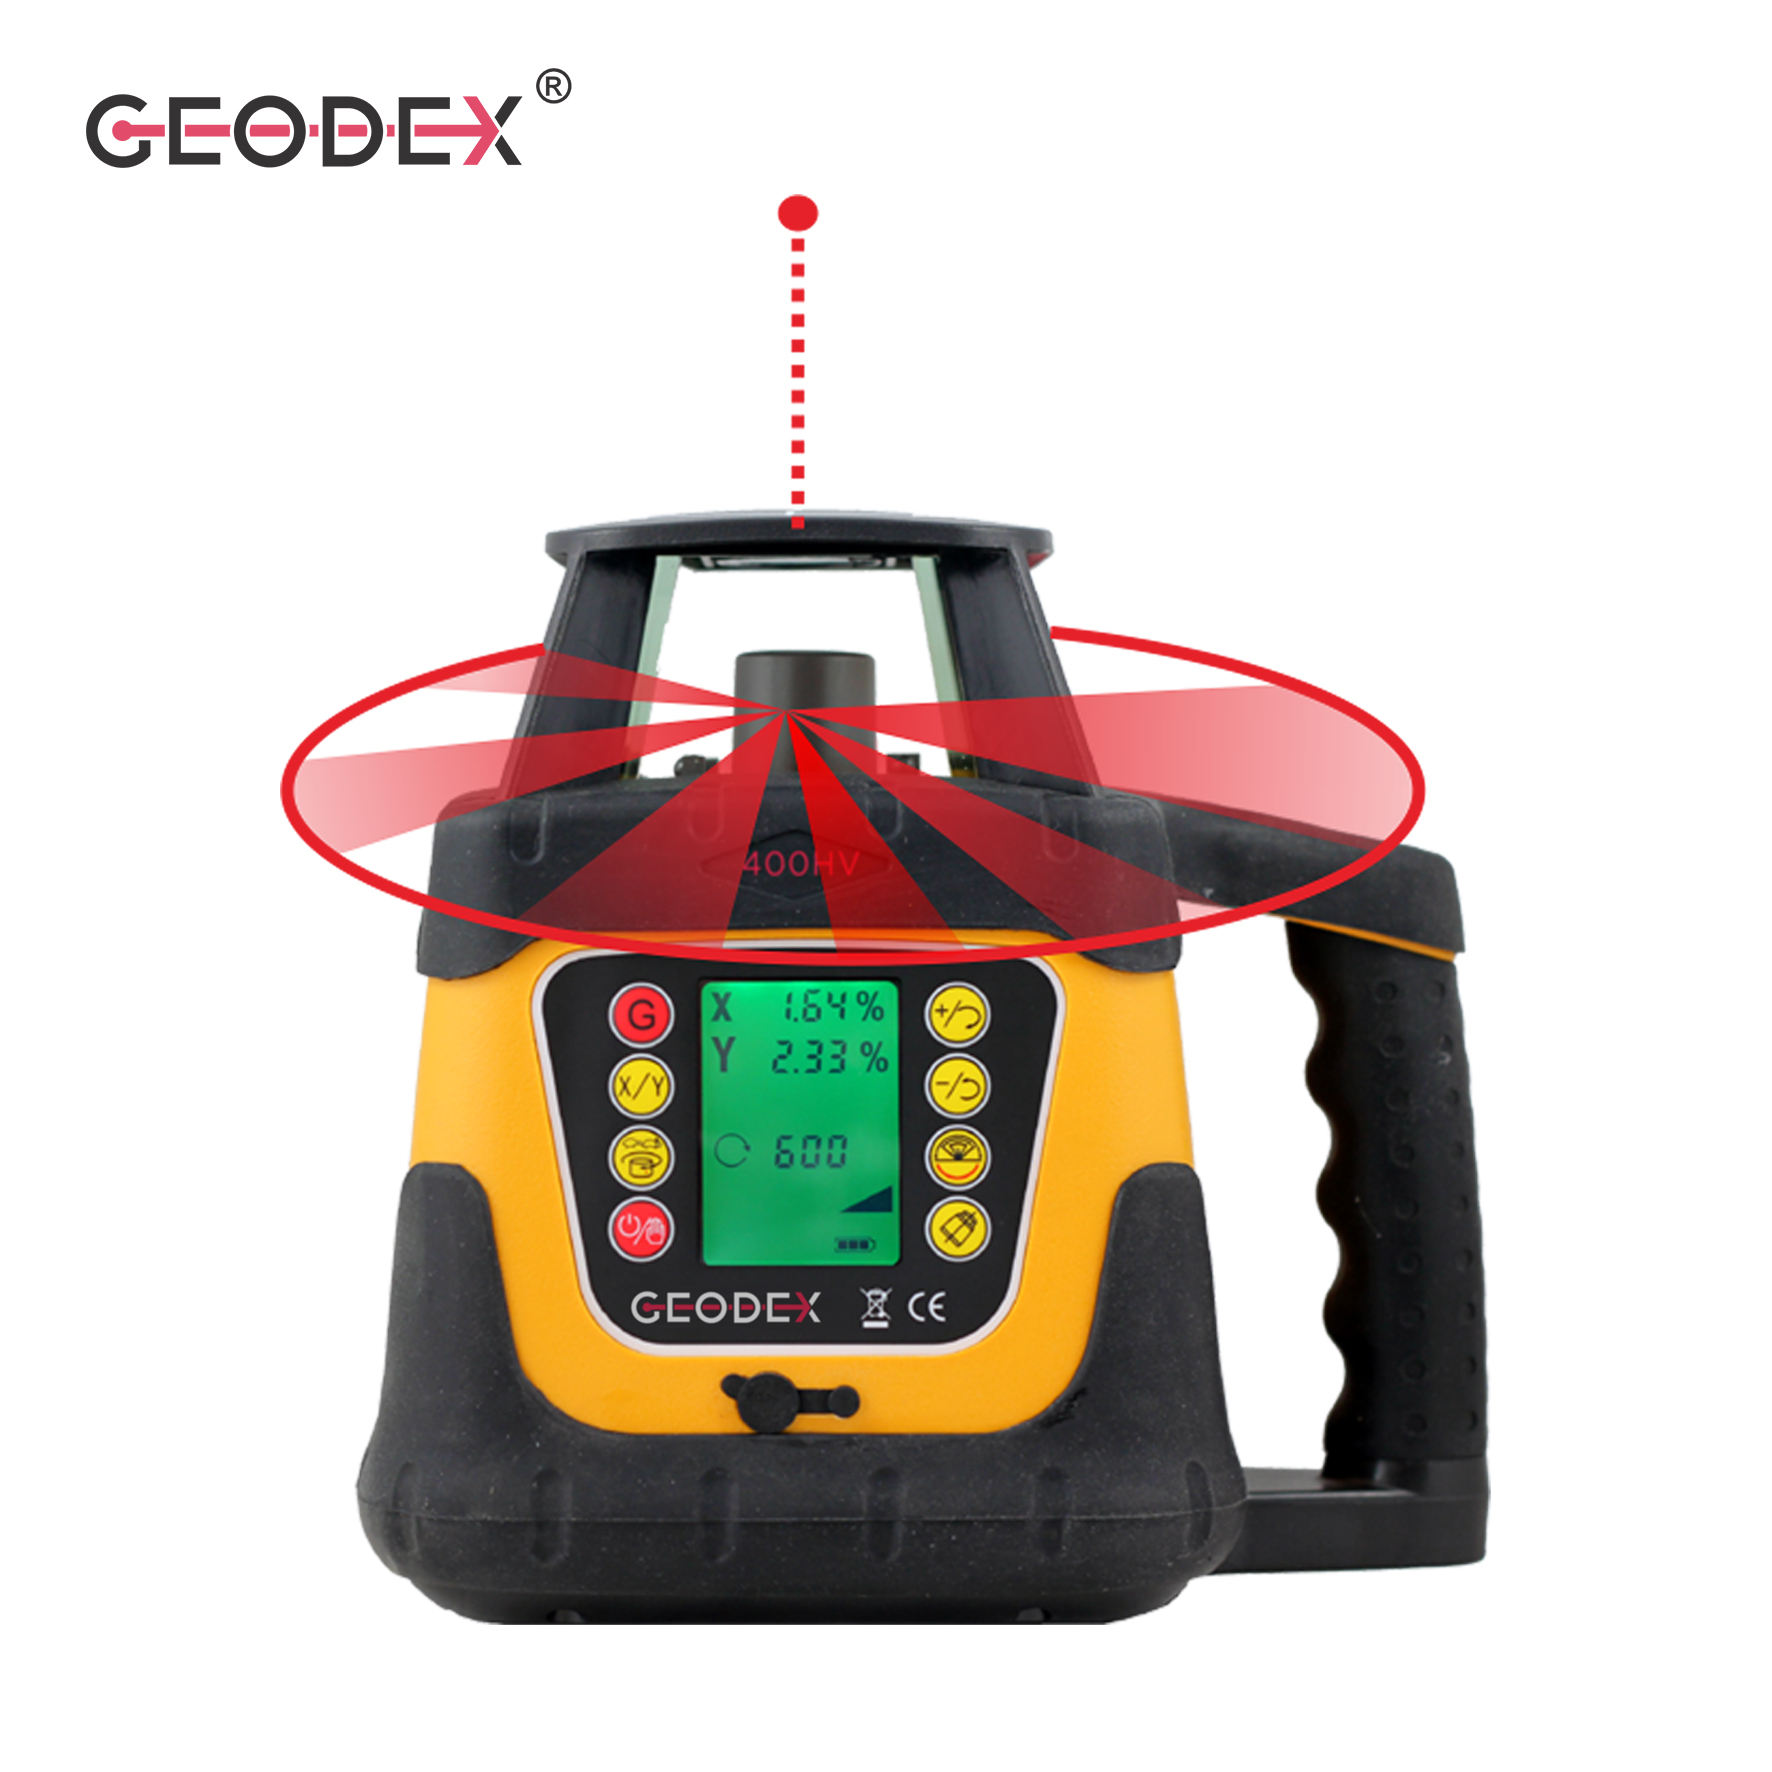 Rotary Laser Level 400hv with Slope Setting Function & LCD Display Measuring Instrument slop scale Rotating Red Laser level